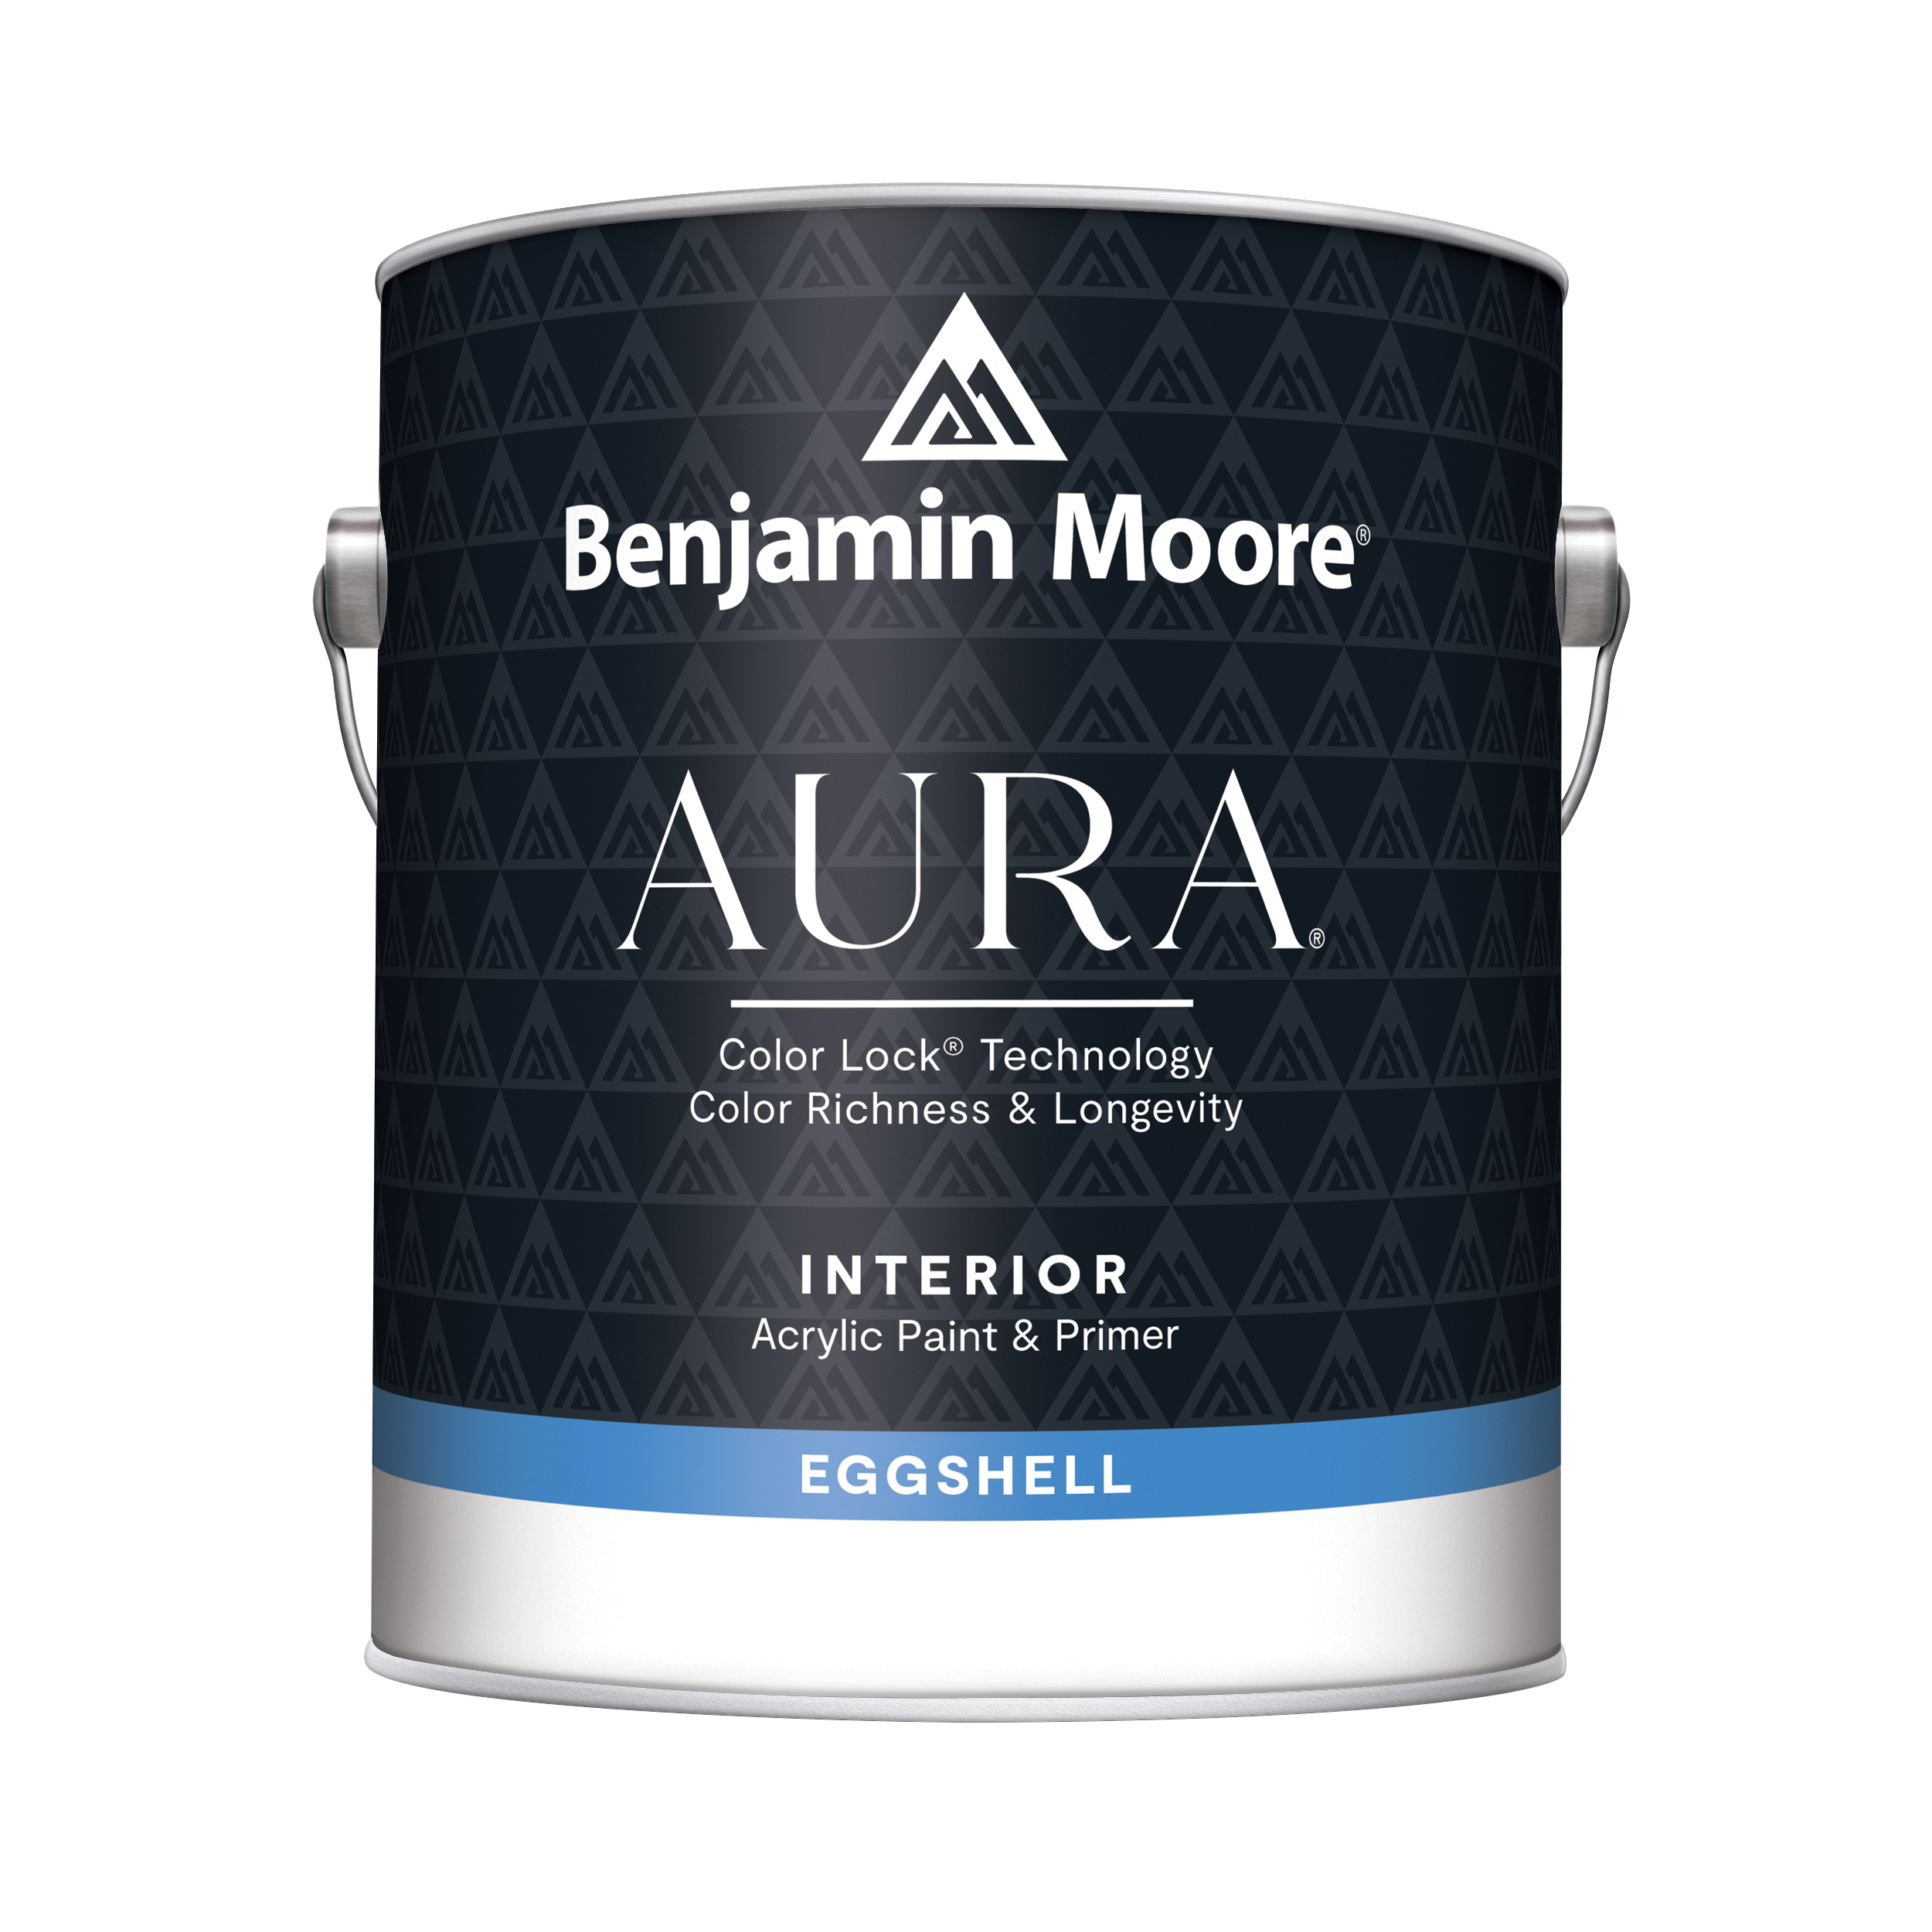 Picture of Benjamin Moore Aura 05241X-001 Interior Paint, Eggshell, Pastel Base, 1 gal Package